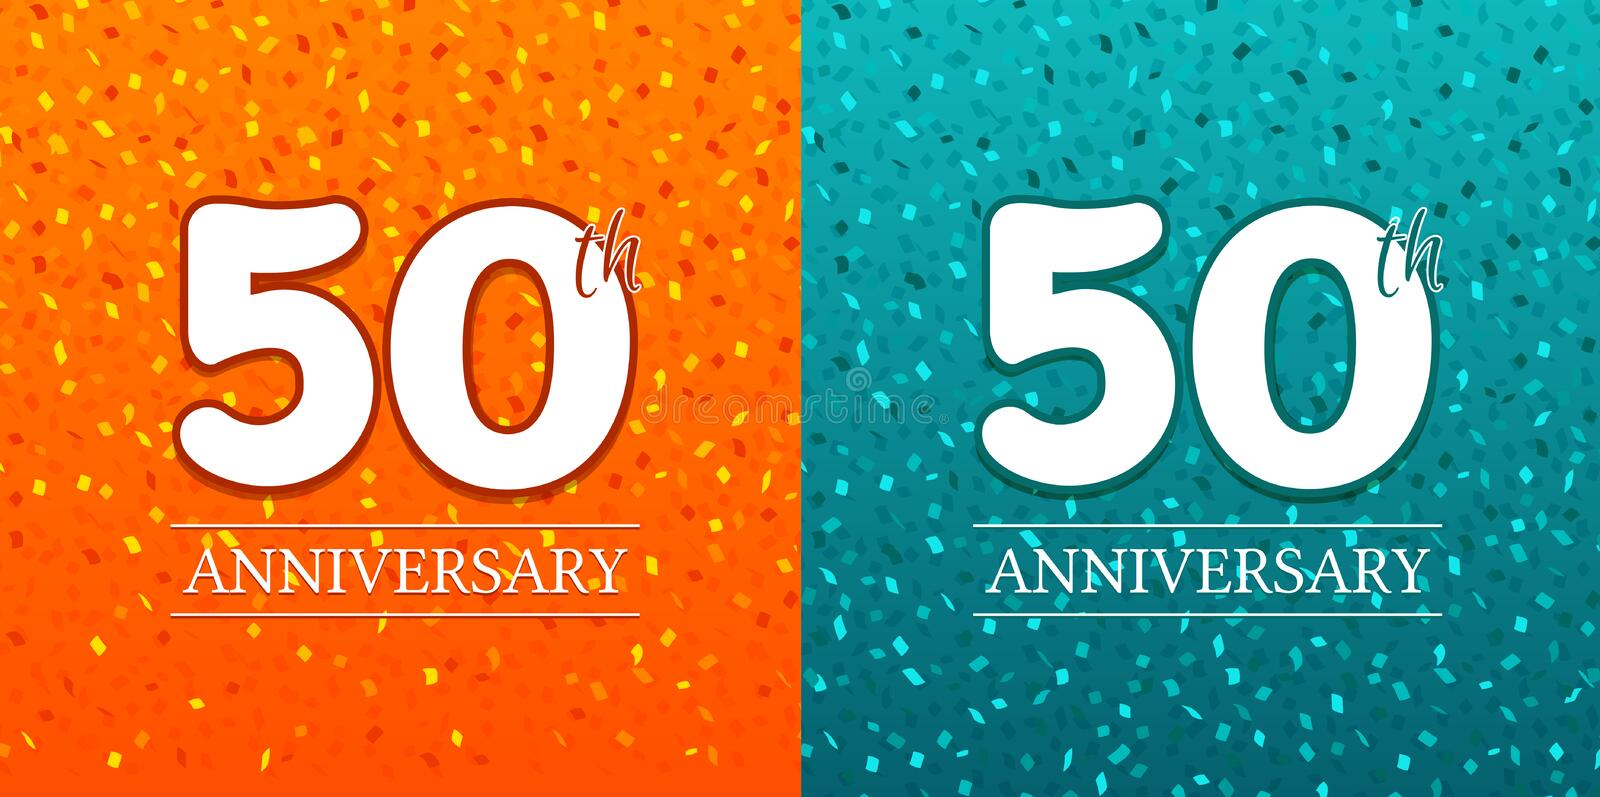 50th Anniversary Background - 50 years Celebration. Birthday Eps10 Vector.  stock illustration